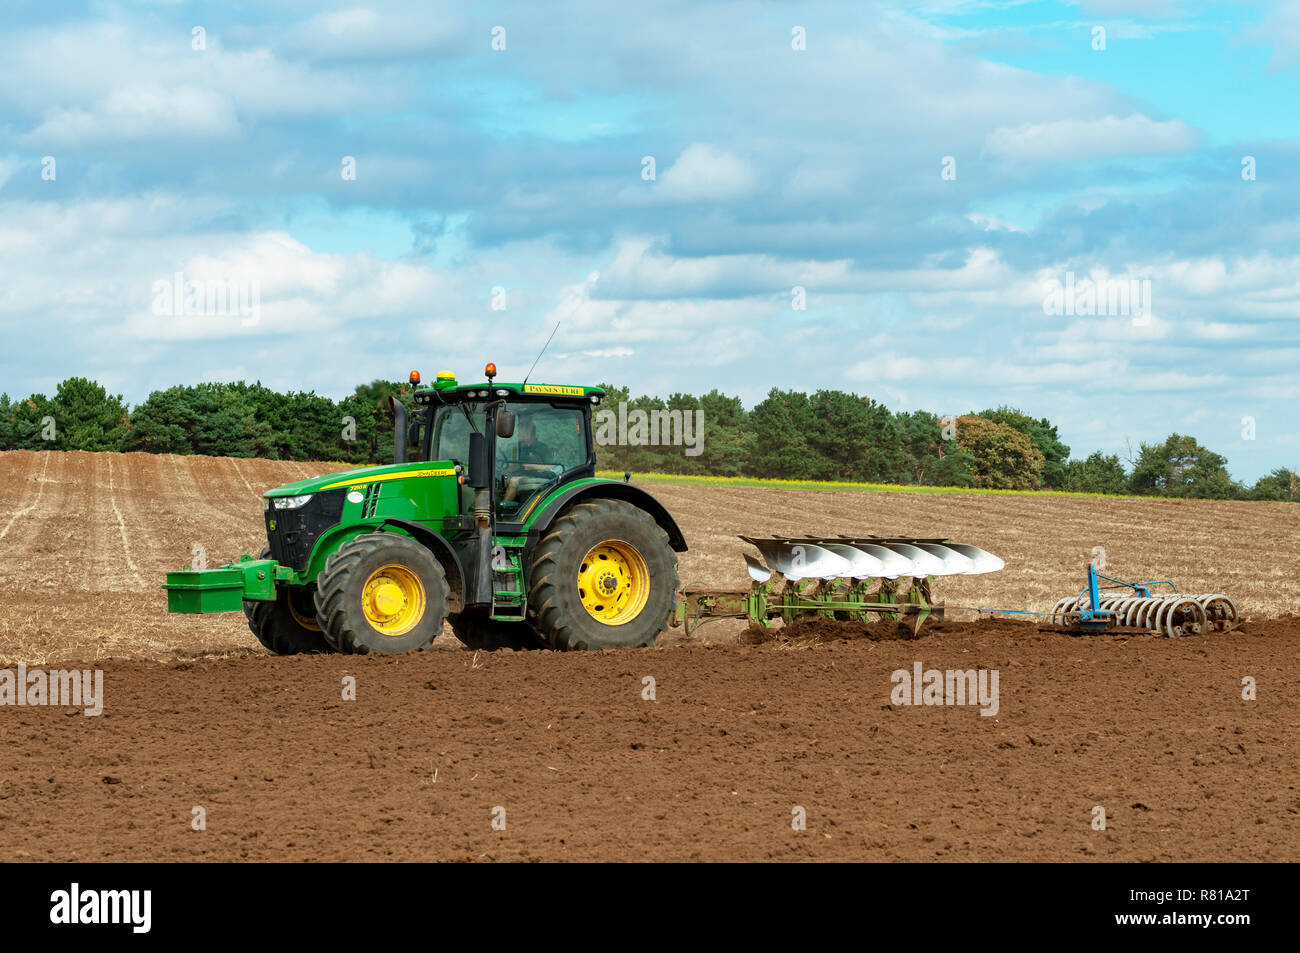 John Deere 7250r Tractor With Plough And Press Bawdsey Suffolk